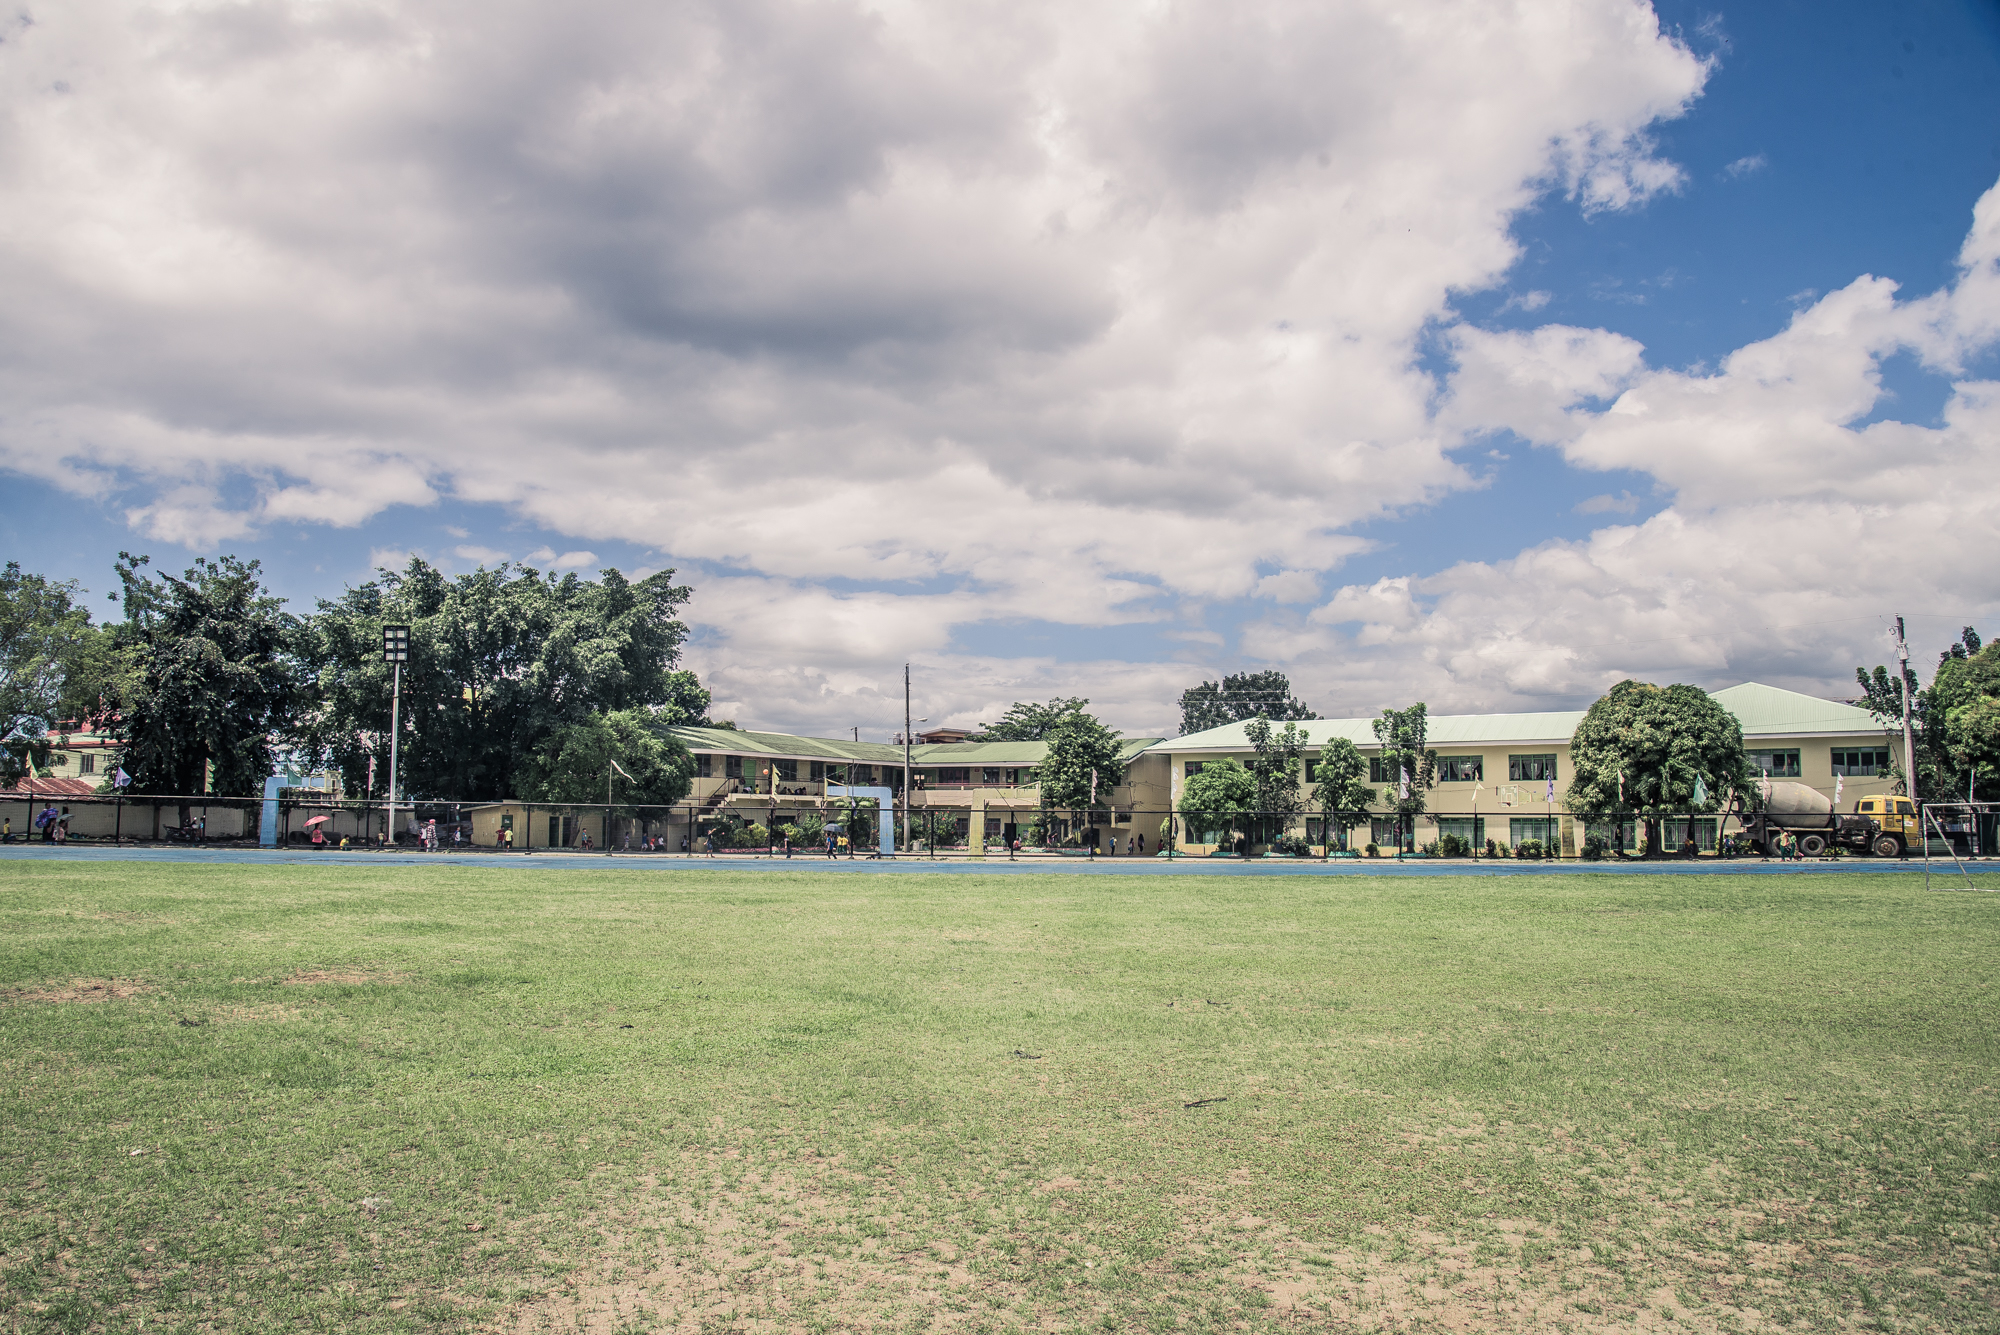 Ormoc City's current main sports facilities - Site for Ormoc's new Fencing Center, covered Basketball court as well as a new Grand Stand.